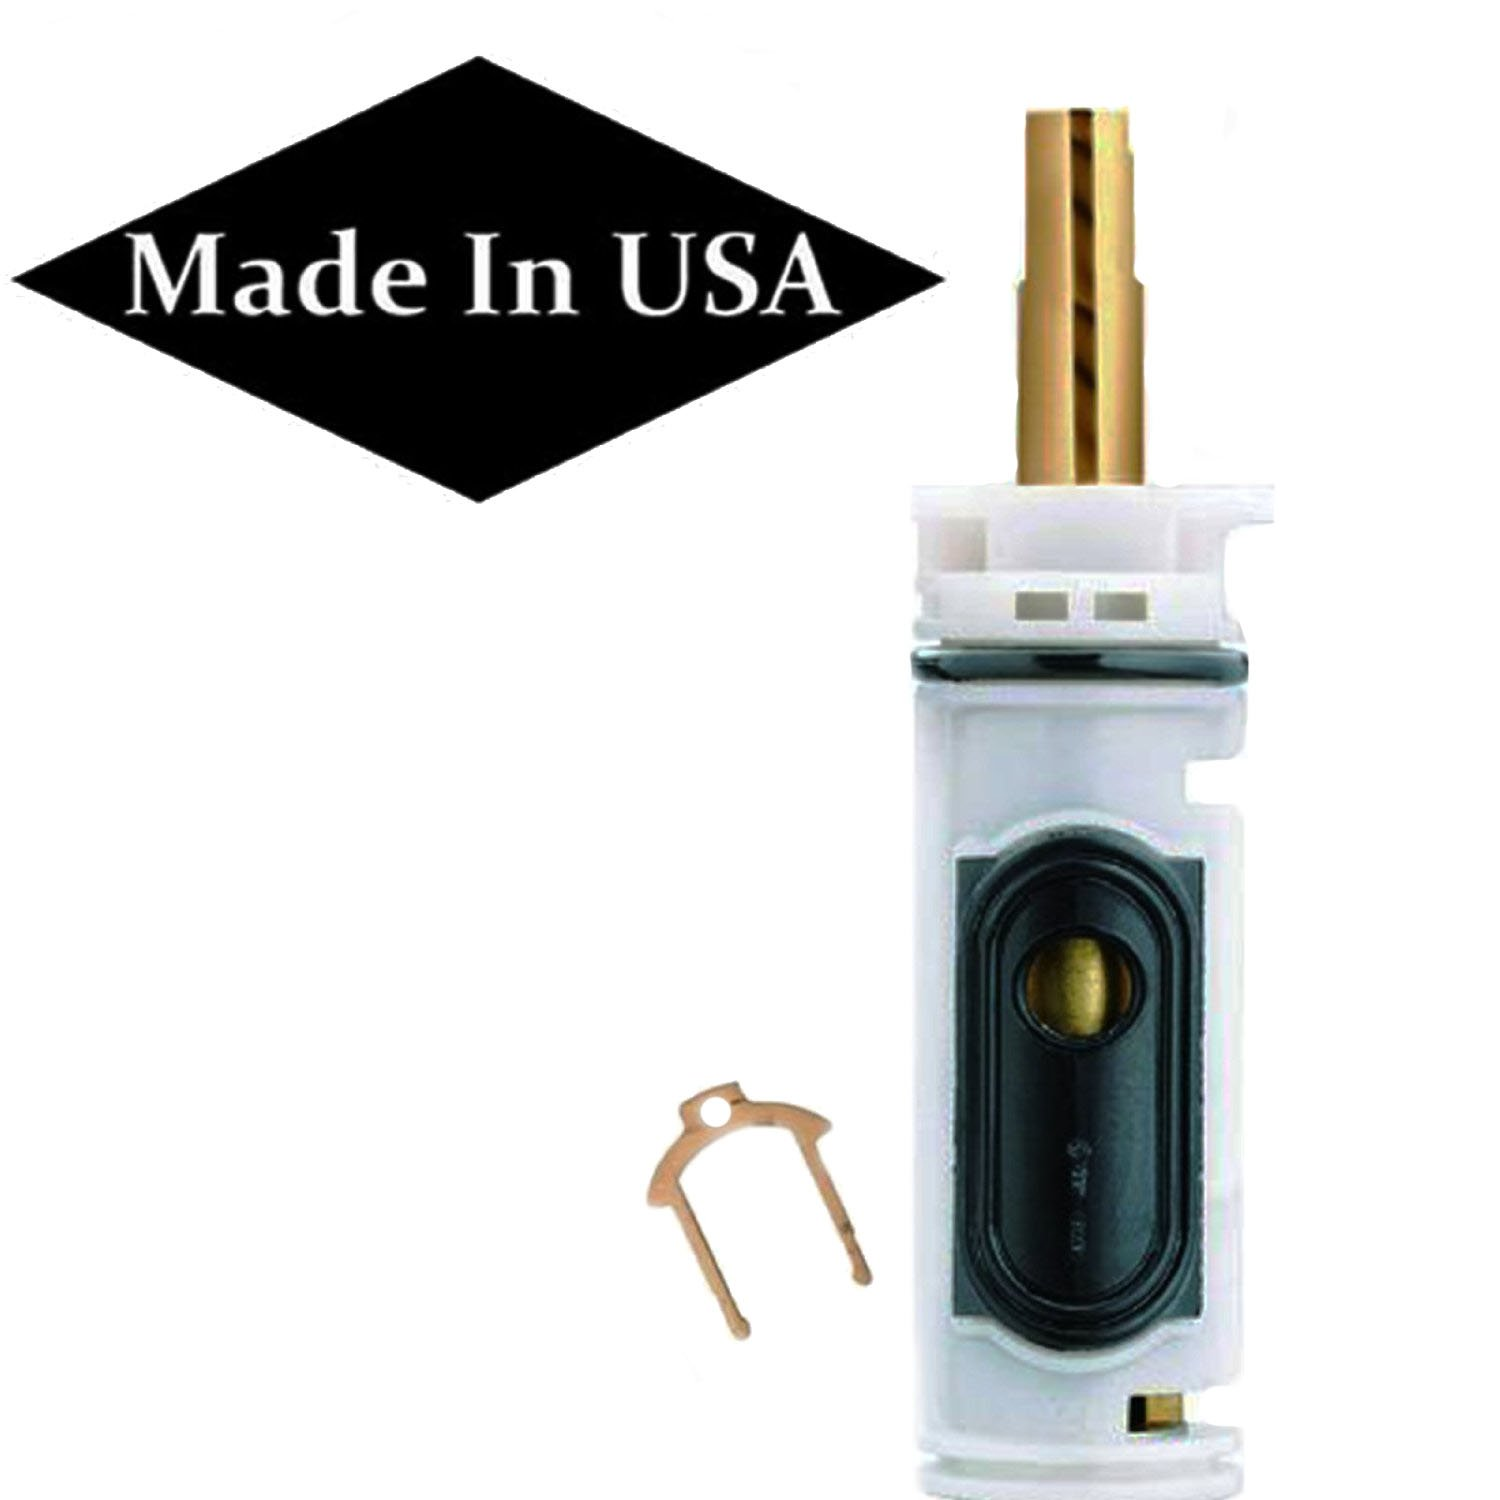 High Quality Amazon.com: Replacement Cartridge Kit For Moen 1222 / 1222B Posi Temp Single  Handle Faucets: Home Improvement